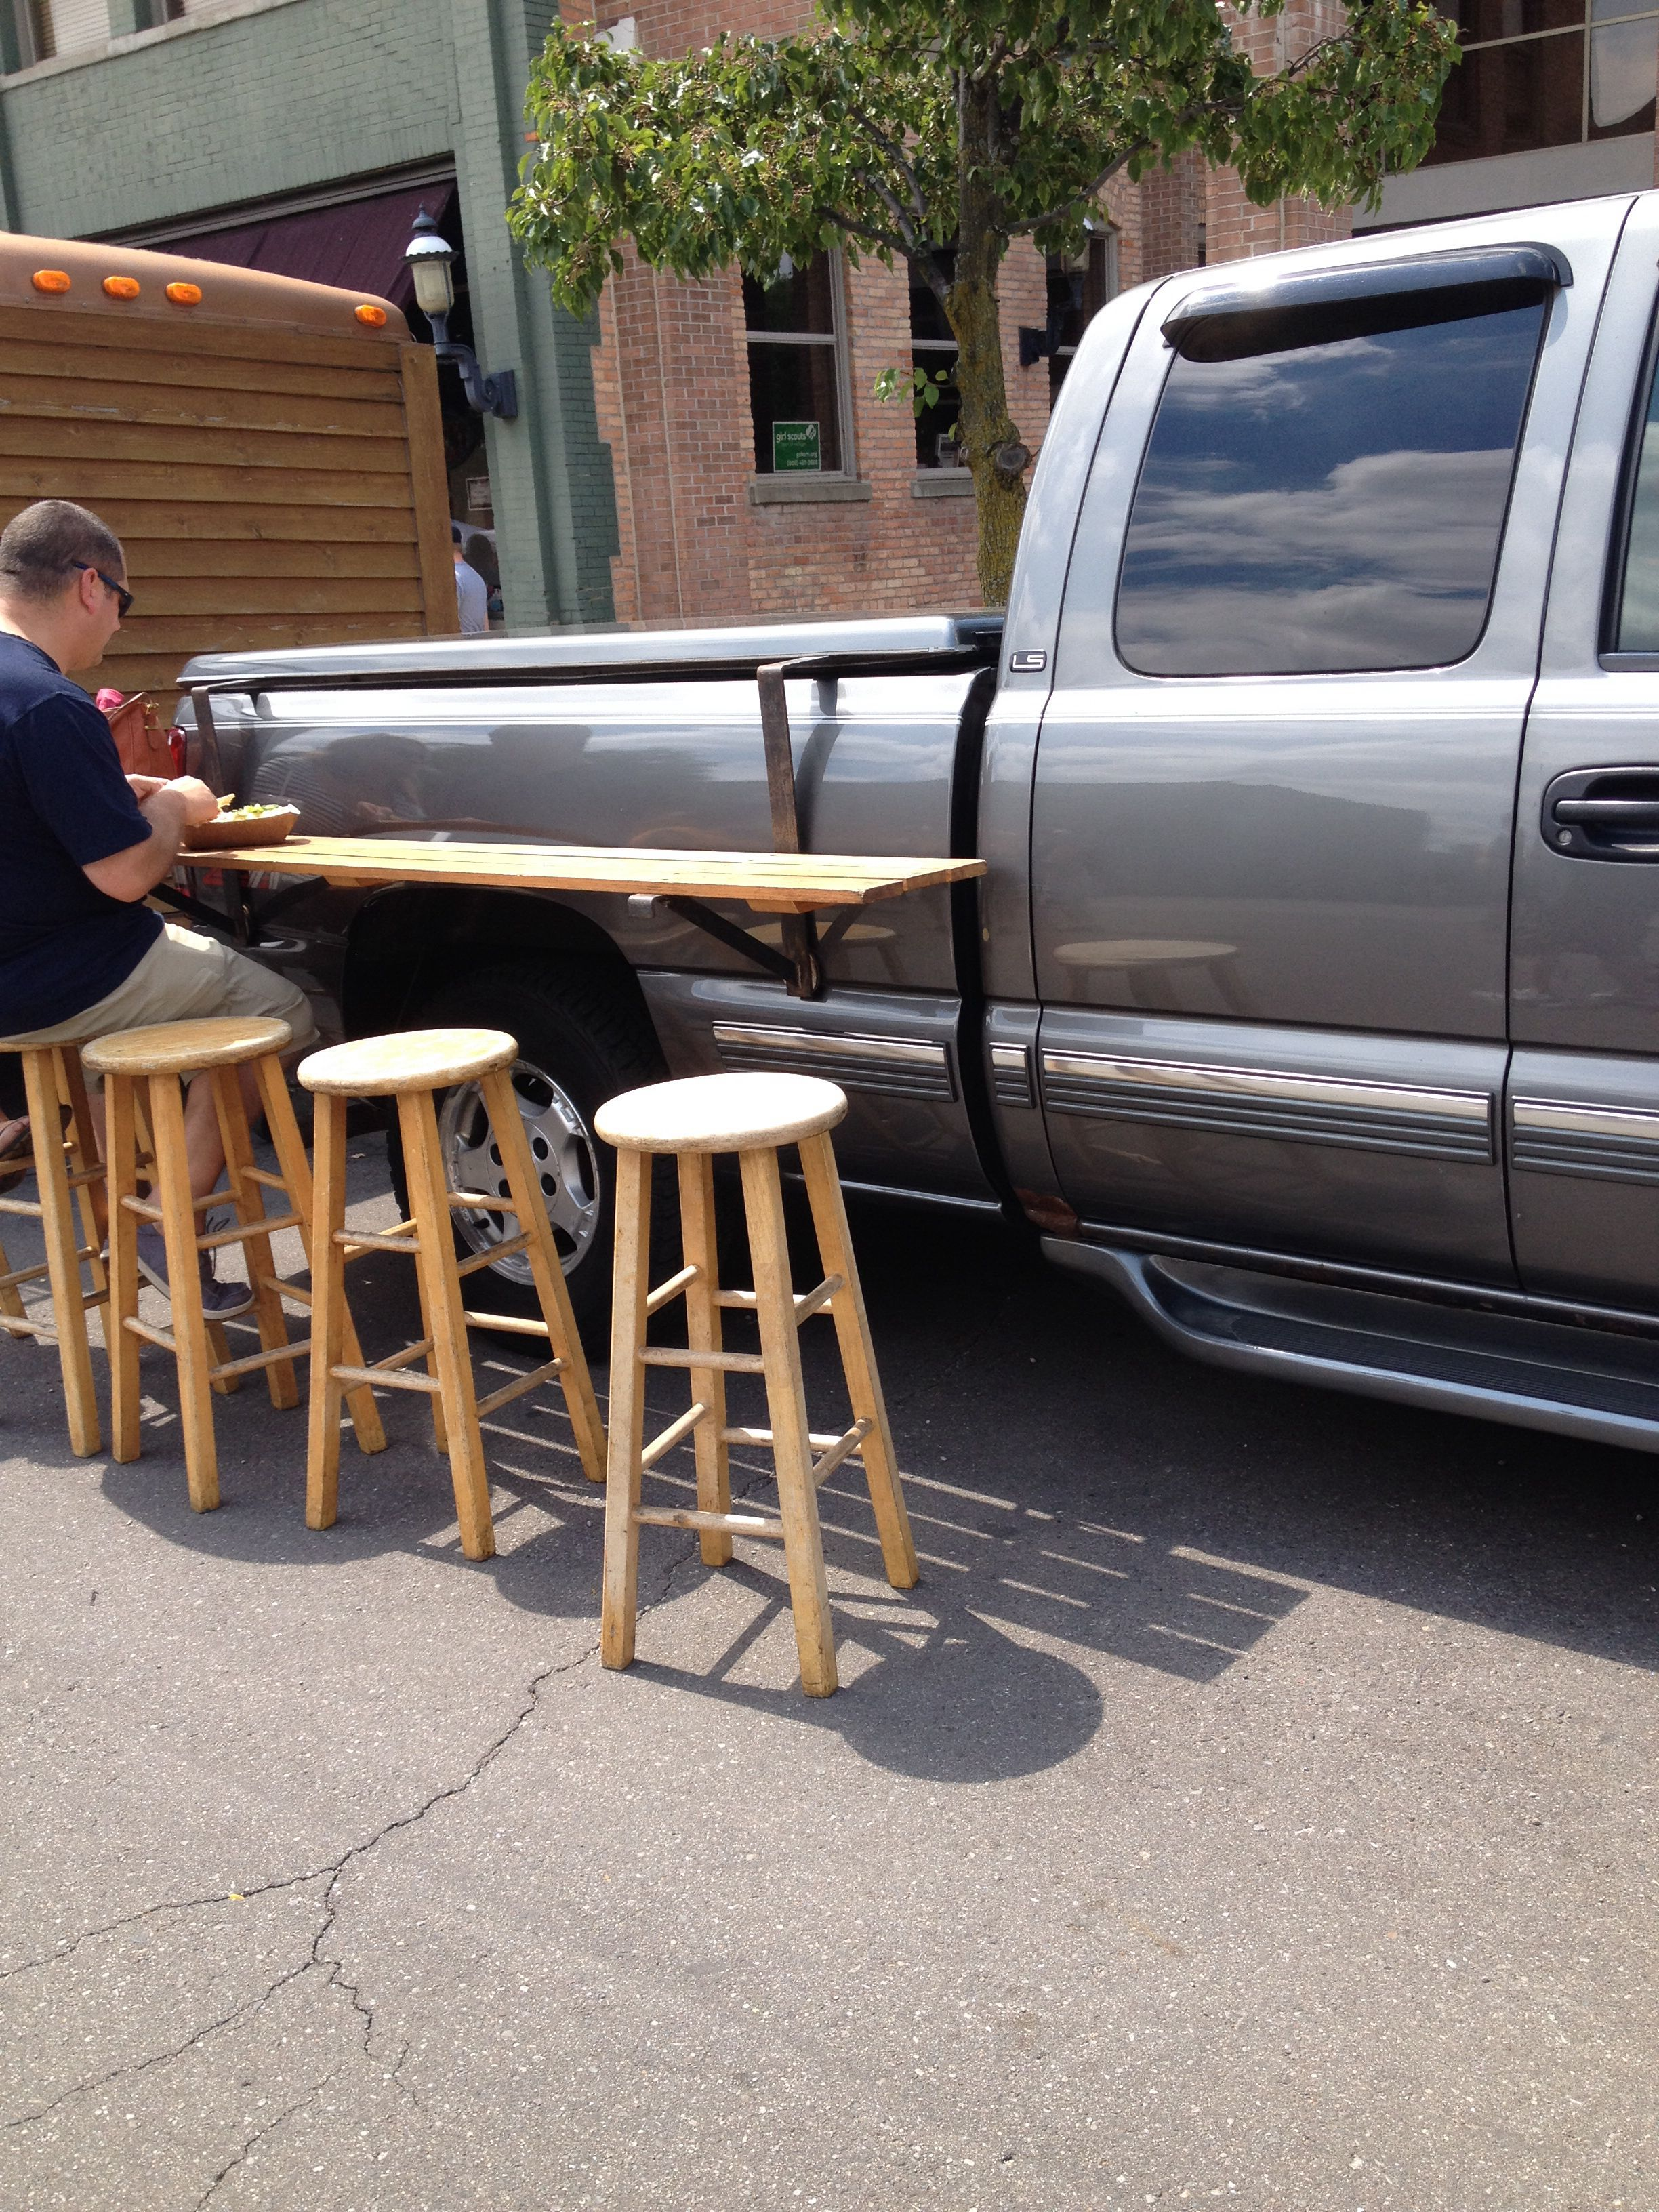 Truck Bed Picnic Table Make From Aluminum Tubing To Make